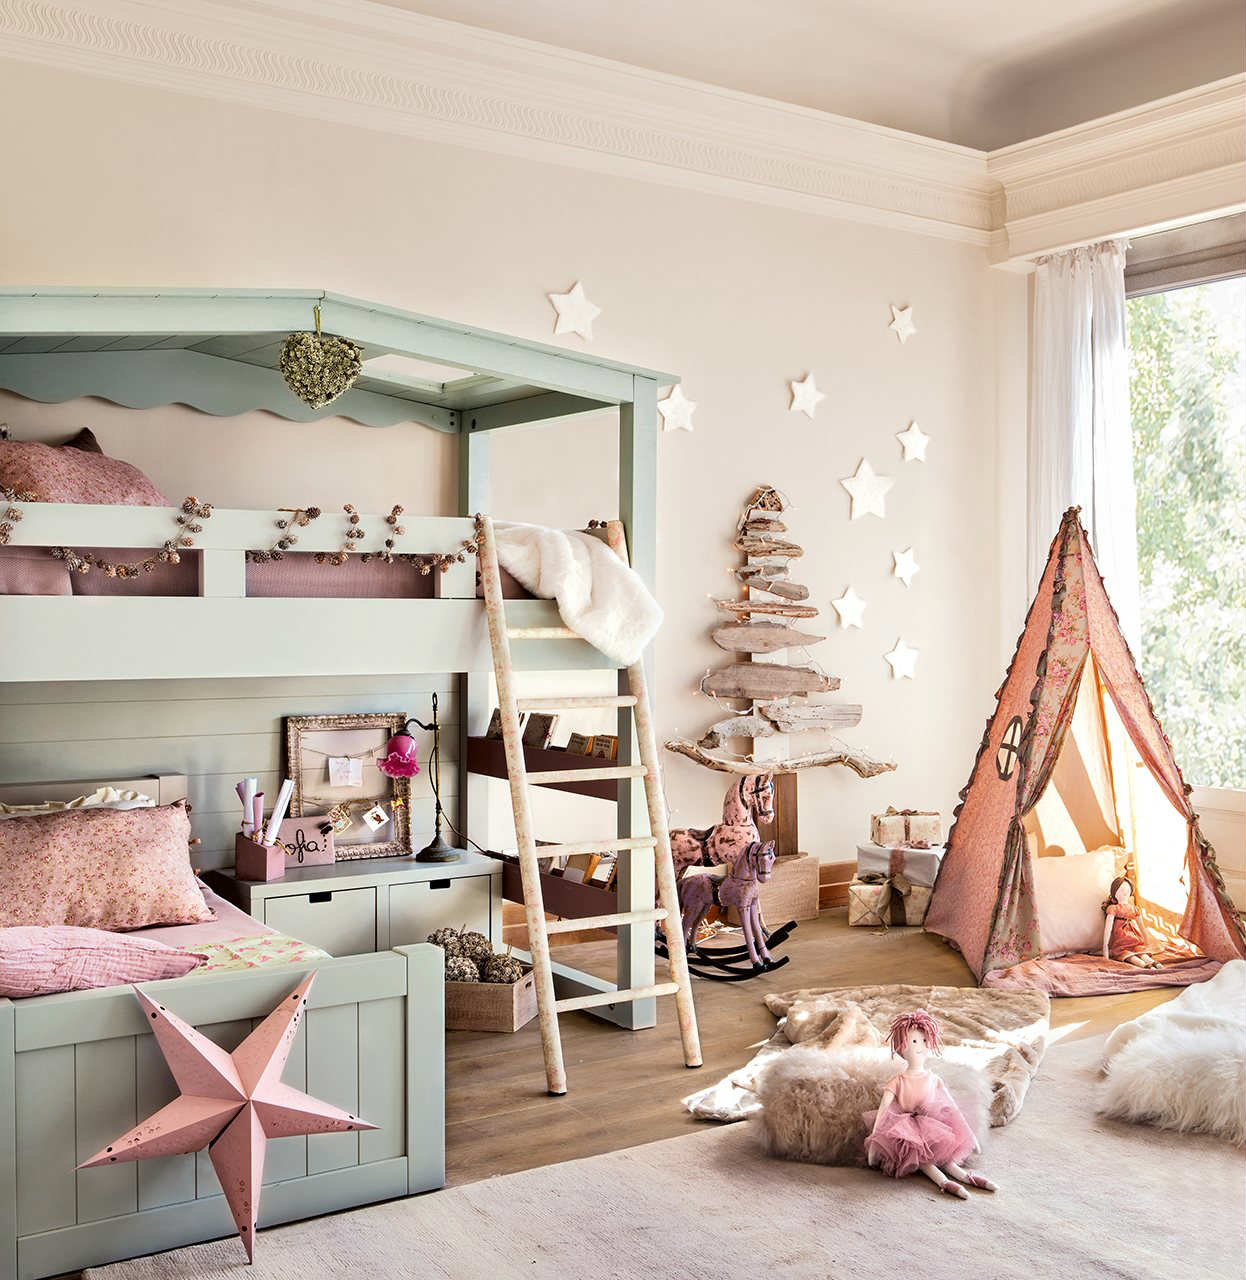 Elegant Light Creame Painted Wall Pastel Painted Bed Wooden Floor Cute  Small Tent Adorable Decorations Rustic